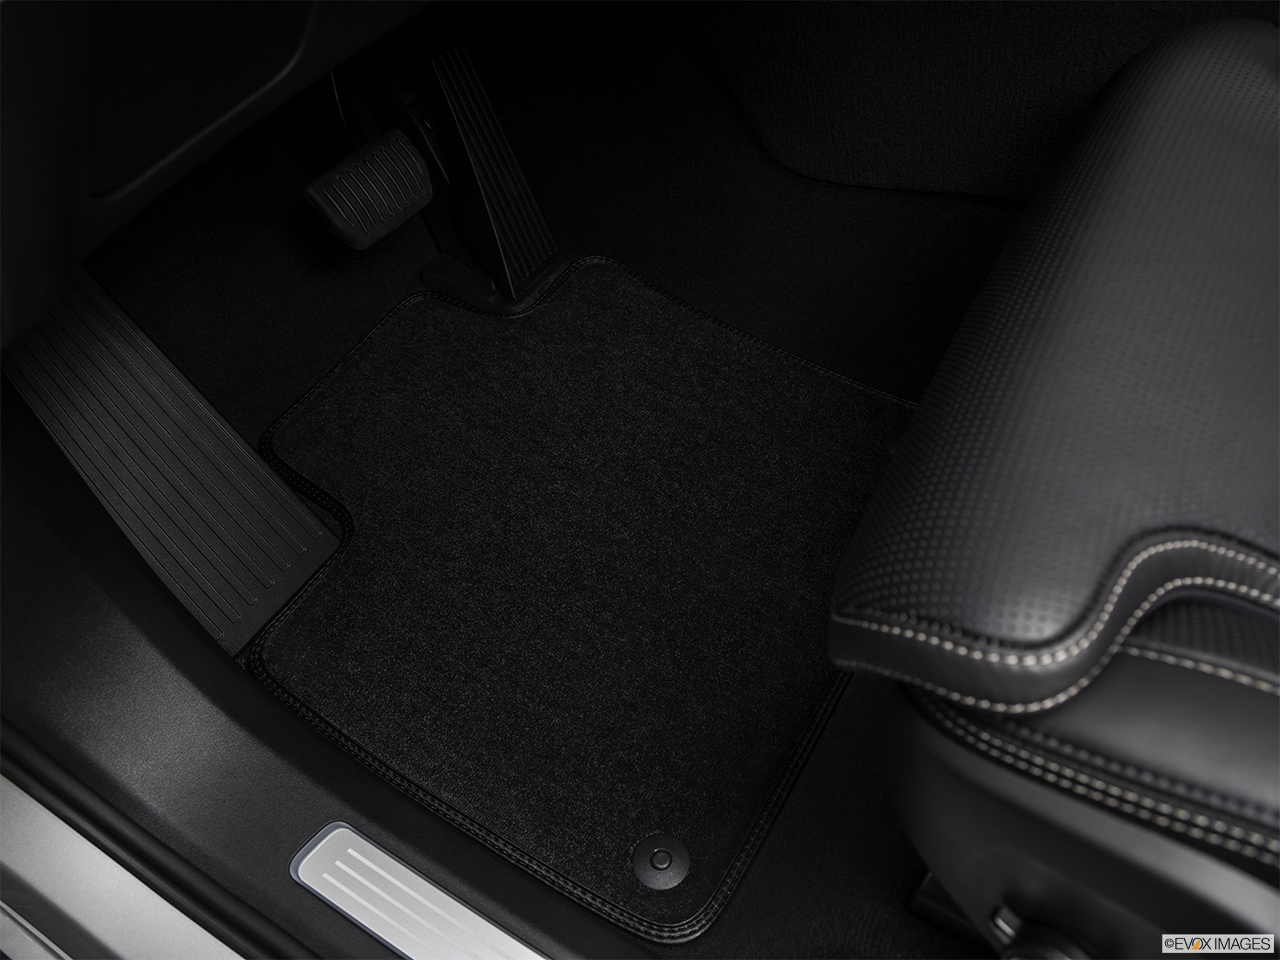 2019 Volvo XC90  T6 Inscription Driver's floor mat and pedals. Mid-seat level from outside looking in.